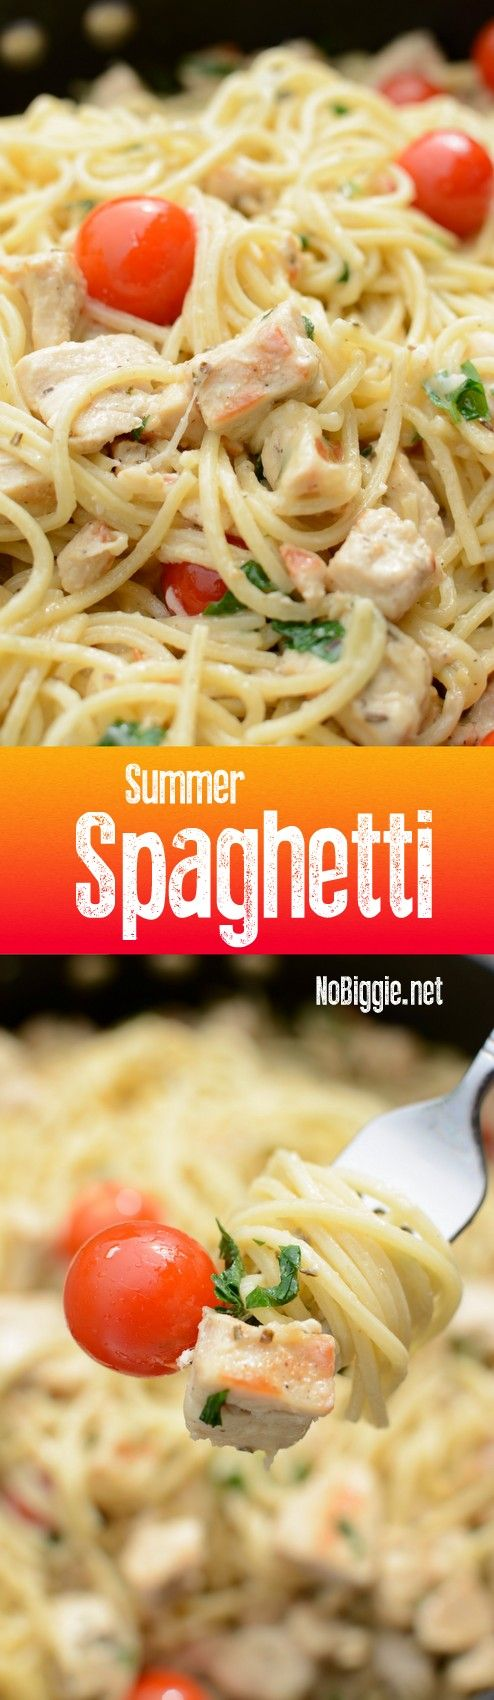 Summer Spaghetti with lemon marinated chicken and garlic gravy... this sauce is amazing -The perfect way to use up all the freshness from your garden